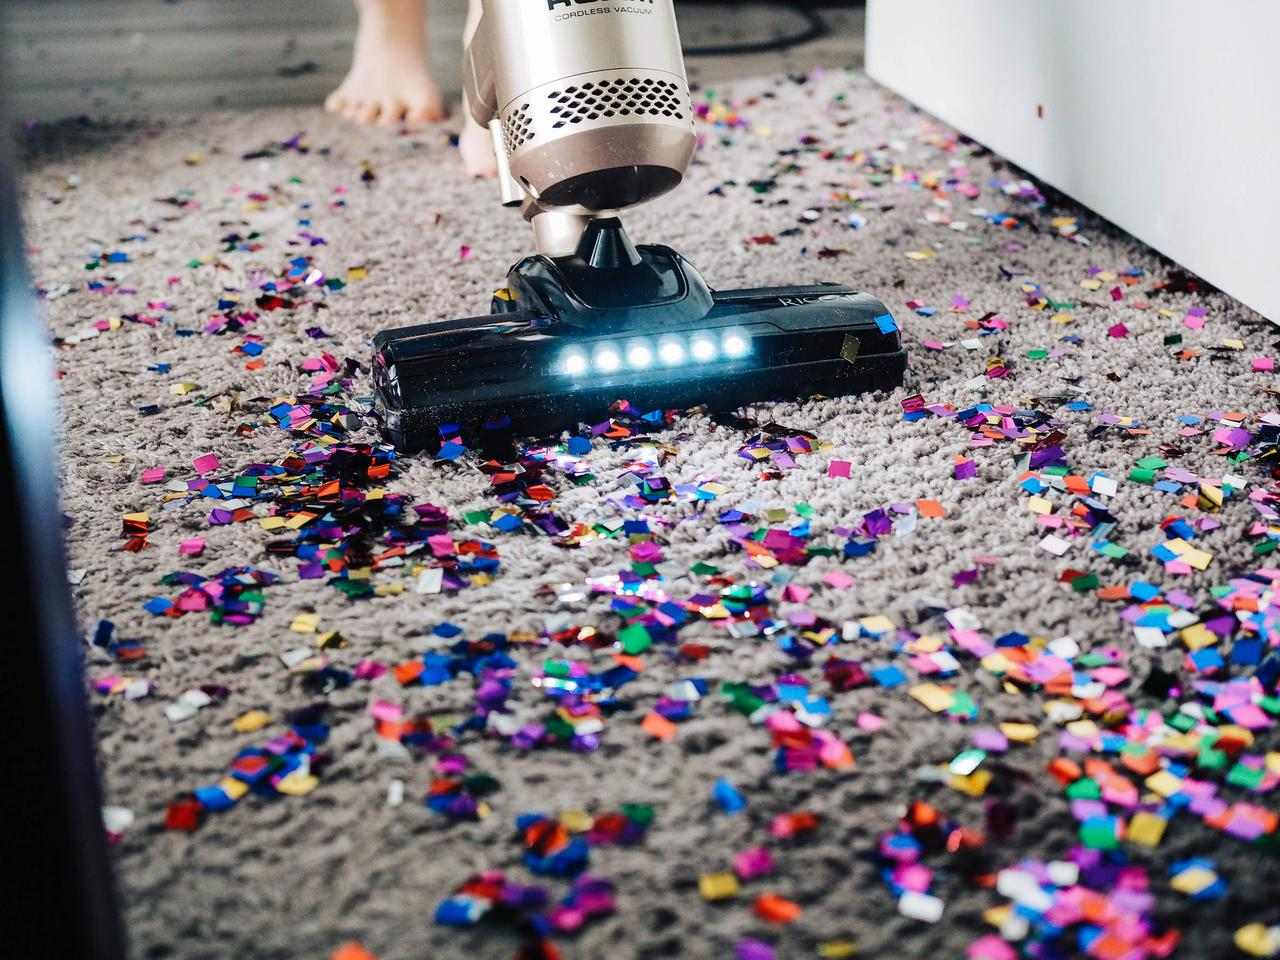 New year, new cleaning company! A review of Springtime Sparkle's commercial cleaning services in NJ<h1></h1>